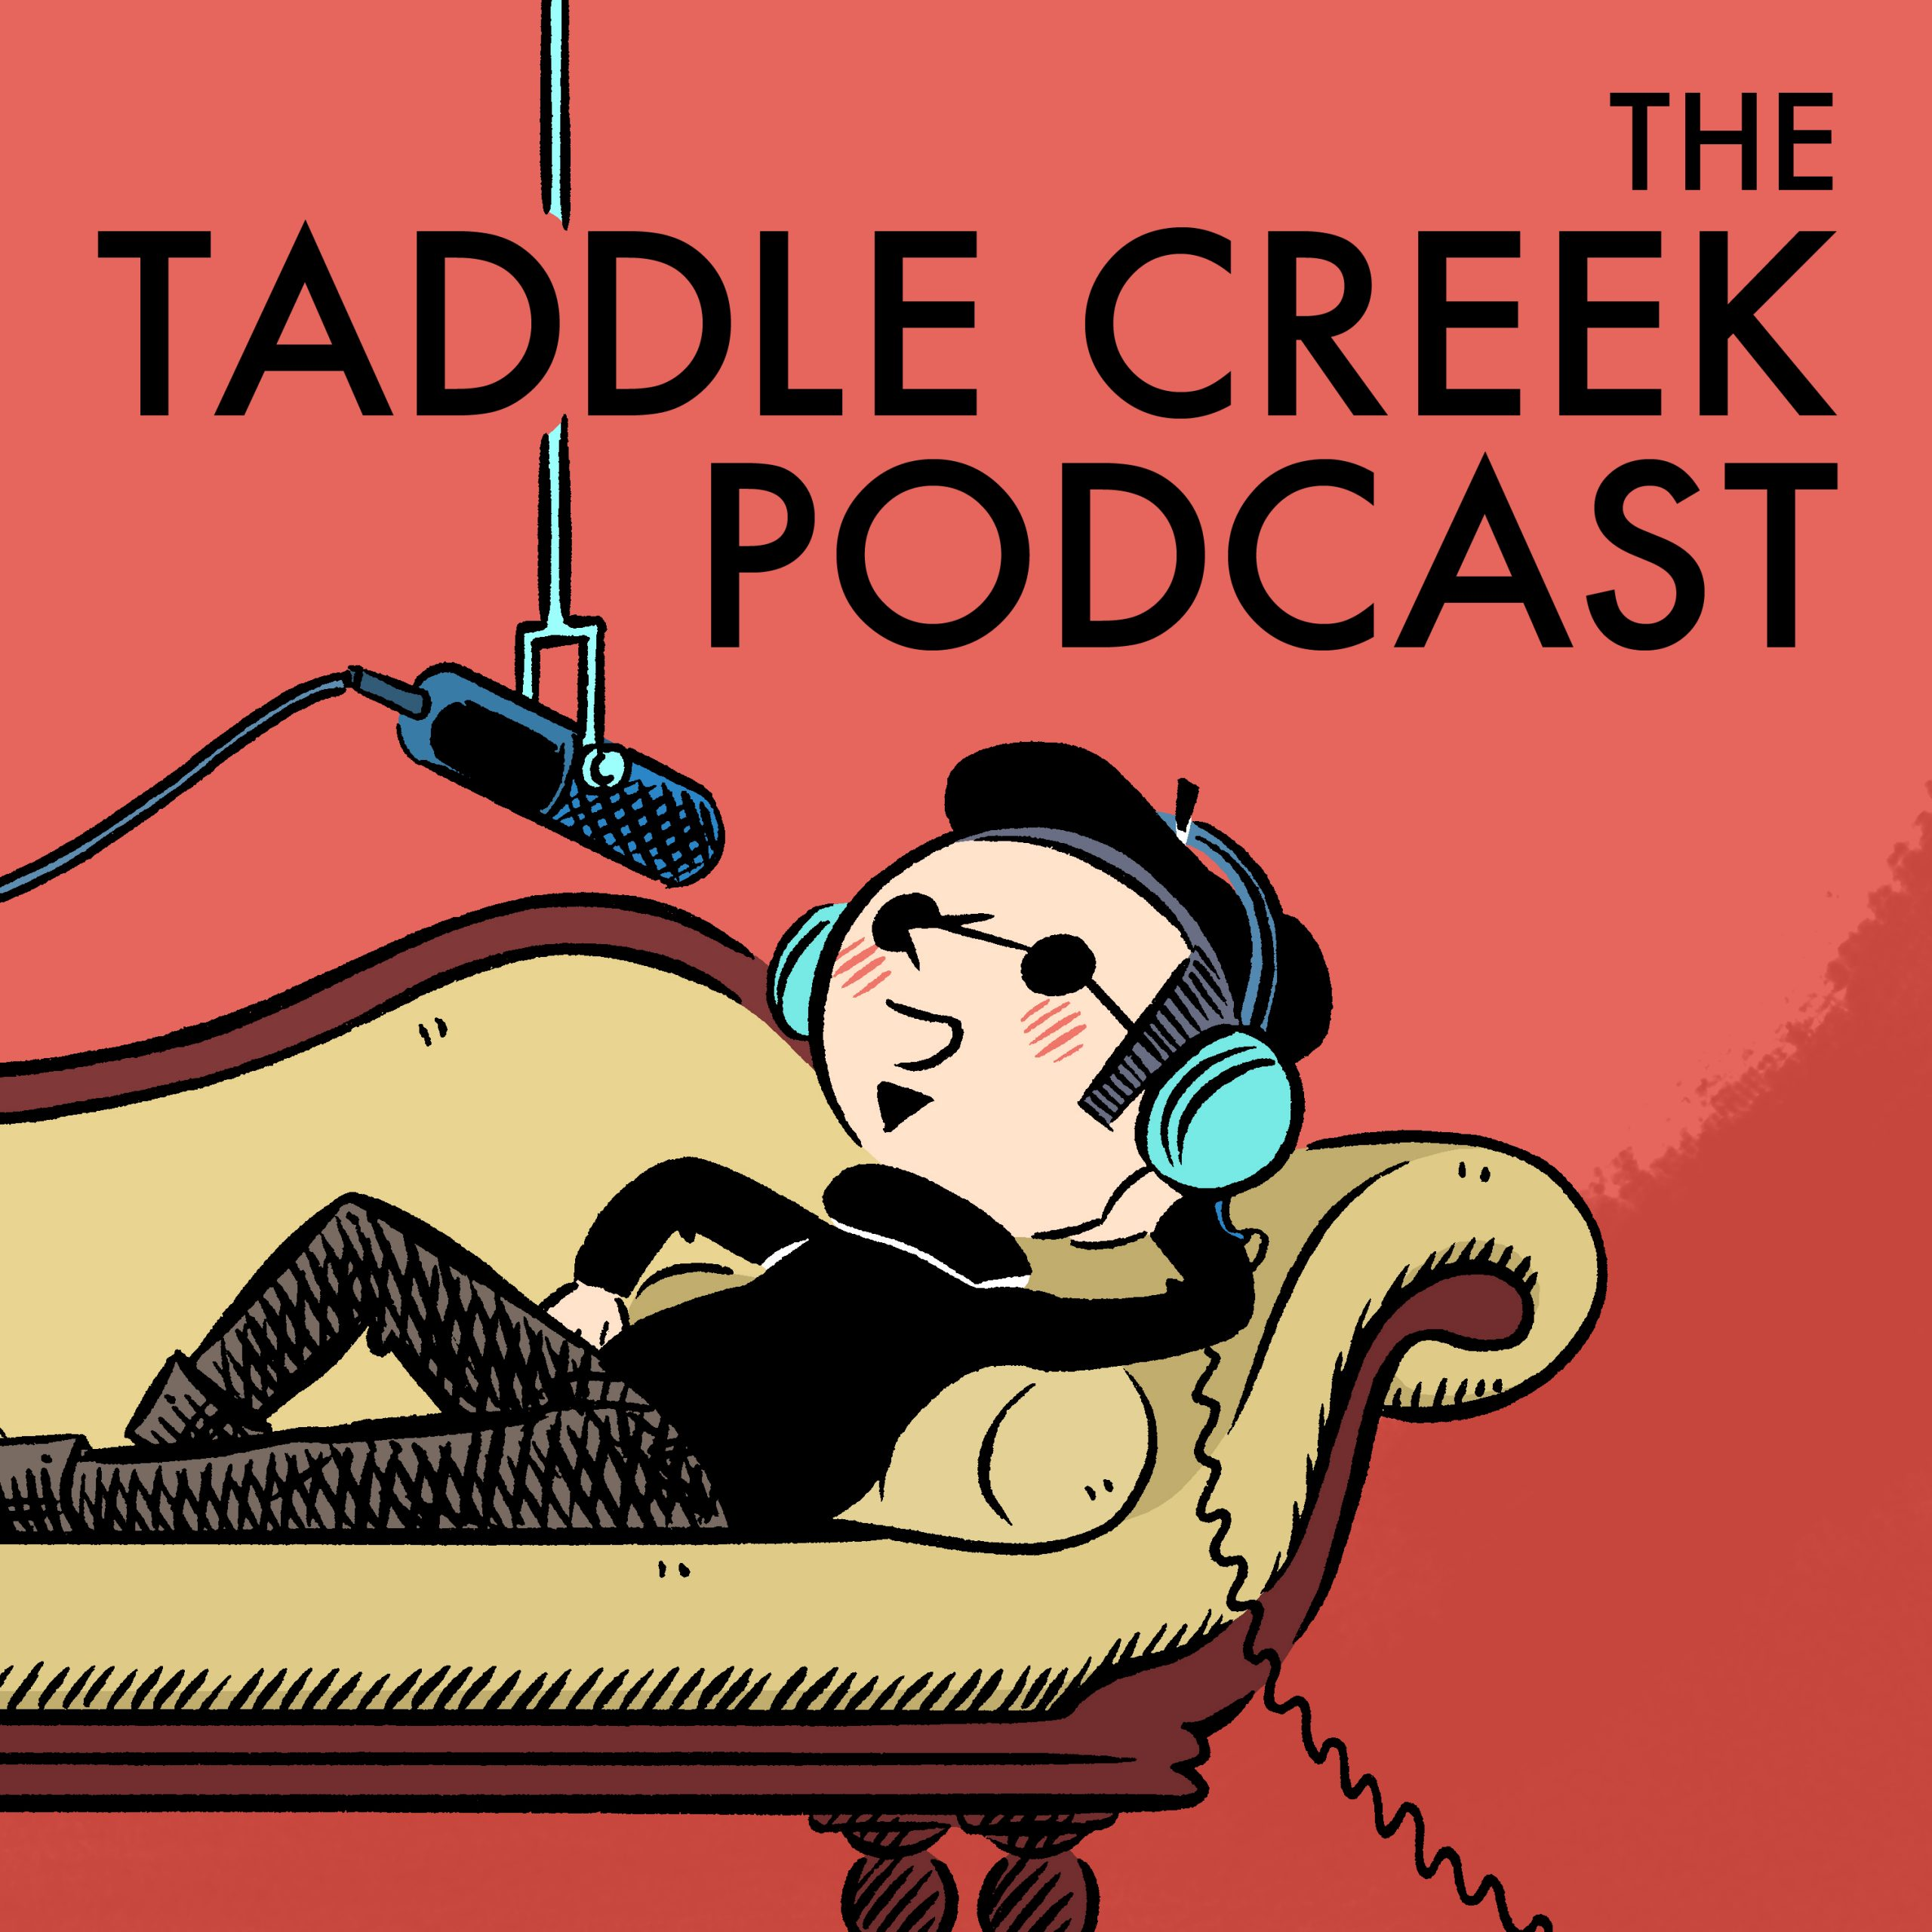 The Taddle Creek Podcast